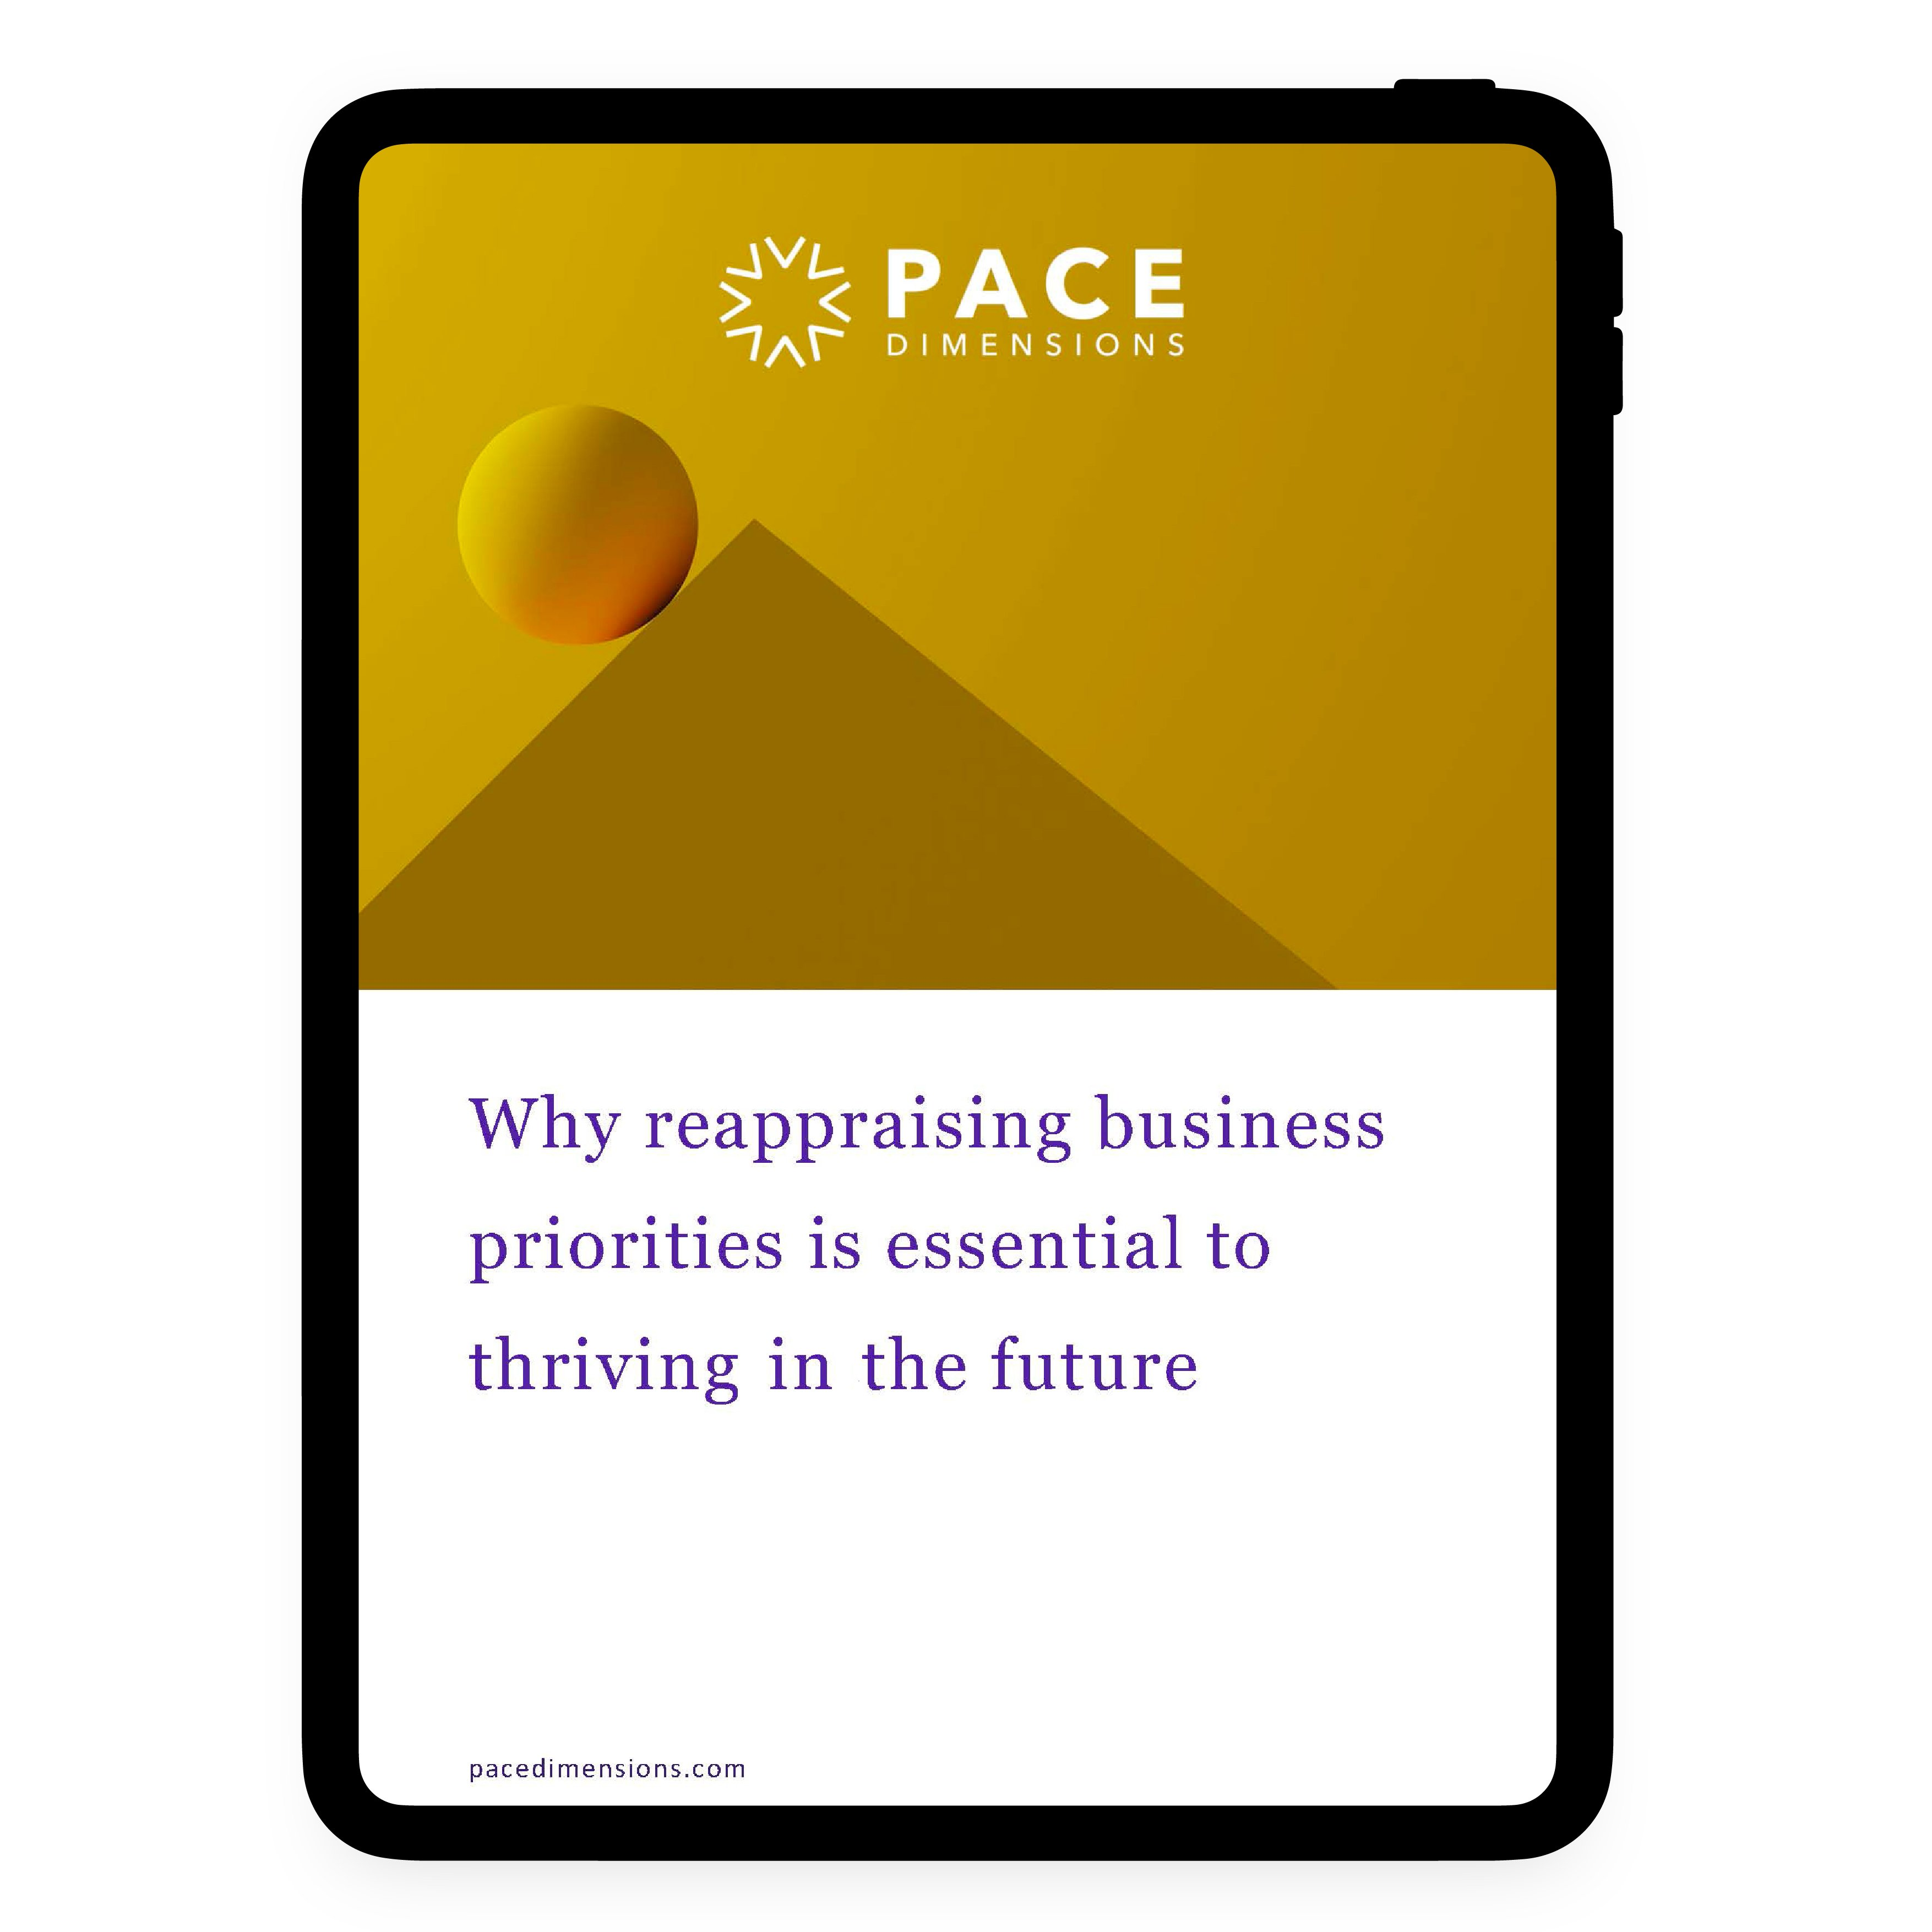 why-reappraising-business-priorities-is-essential-whitepaper-landing-page